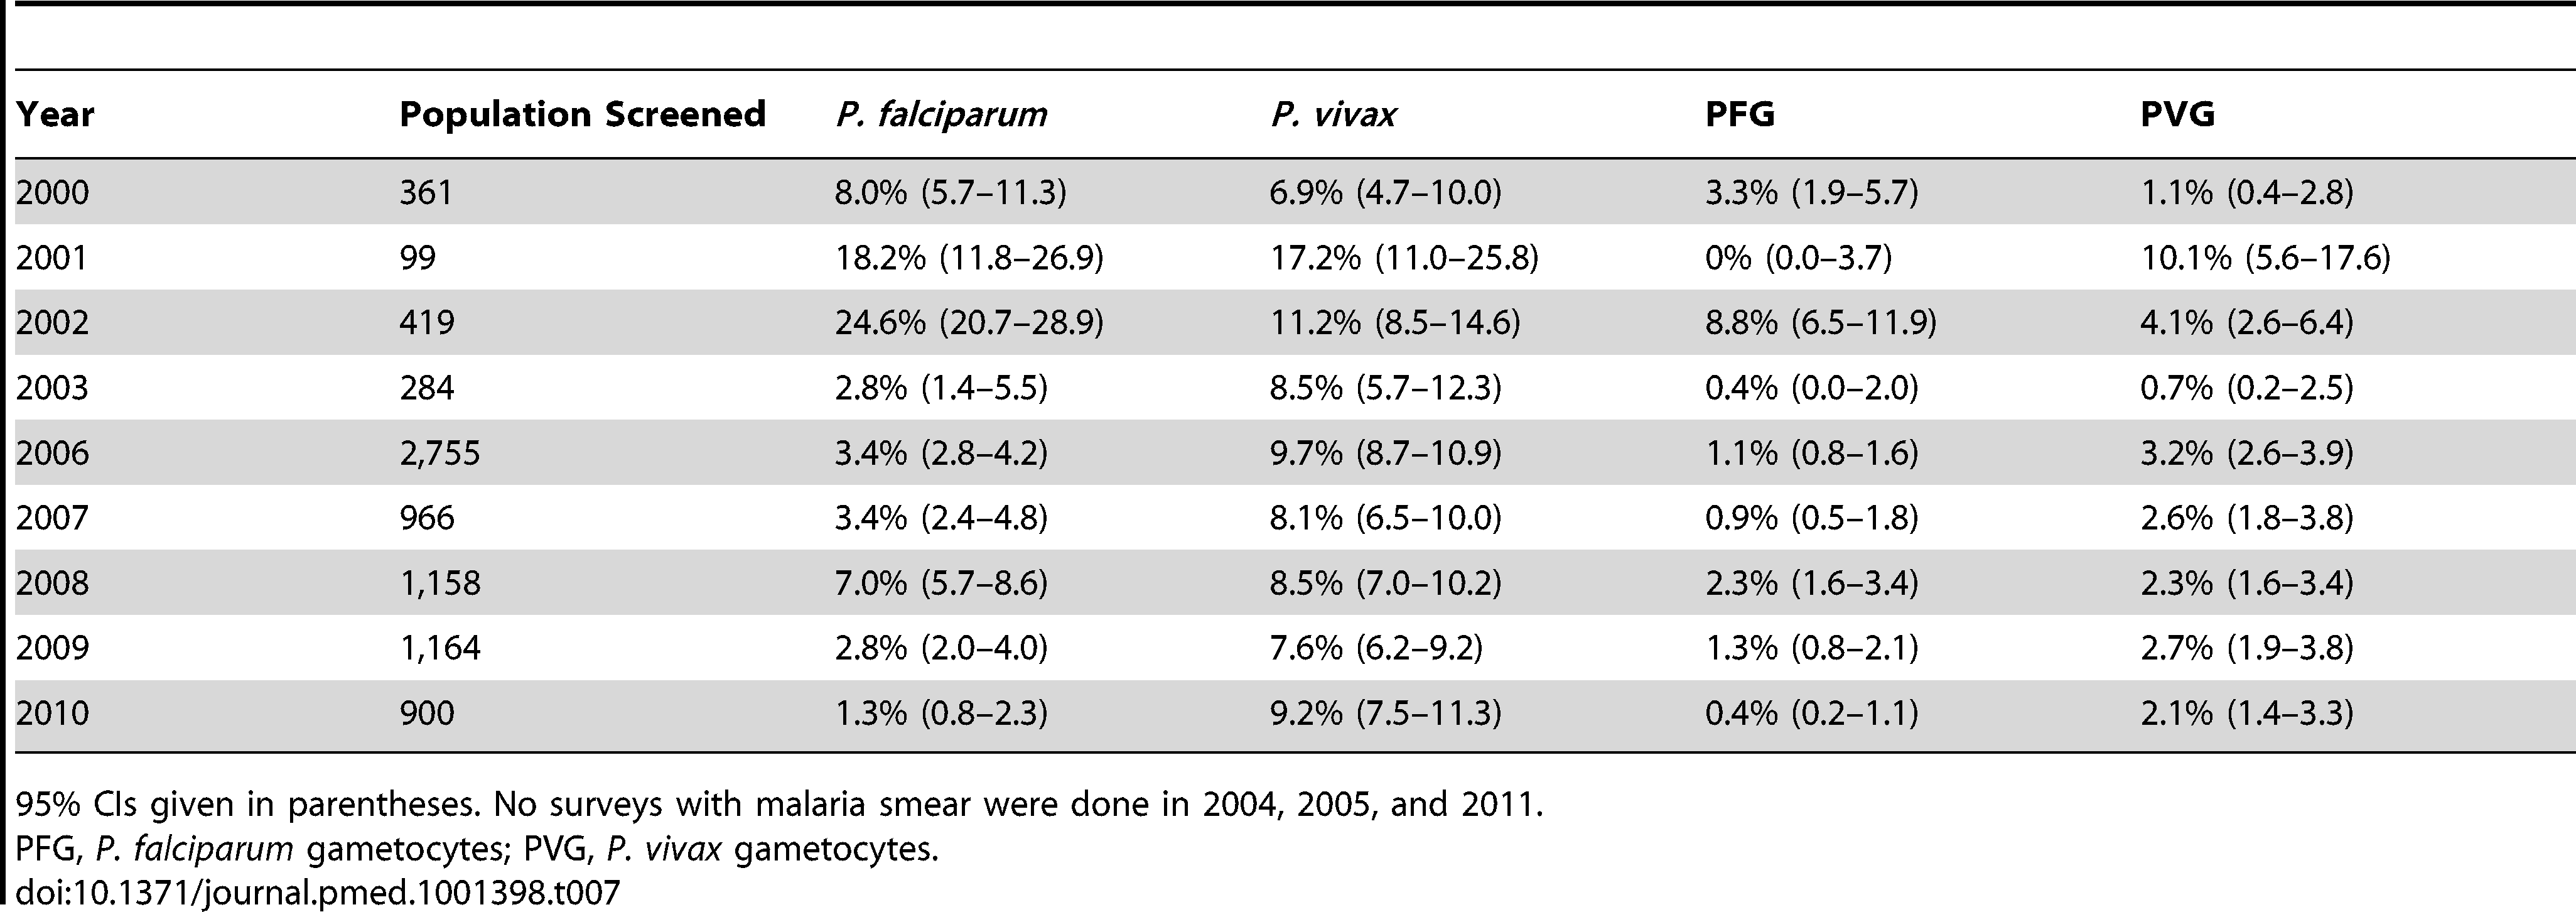 Prevalence of <i>P. falciparum</i> and <i>P. vivax</i> infection and of gametocyte carriage during surveys of Myanmar villages within SMRU clinics and health posts catchment area.